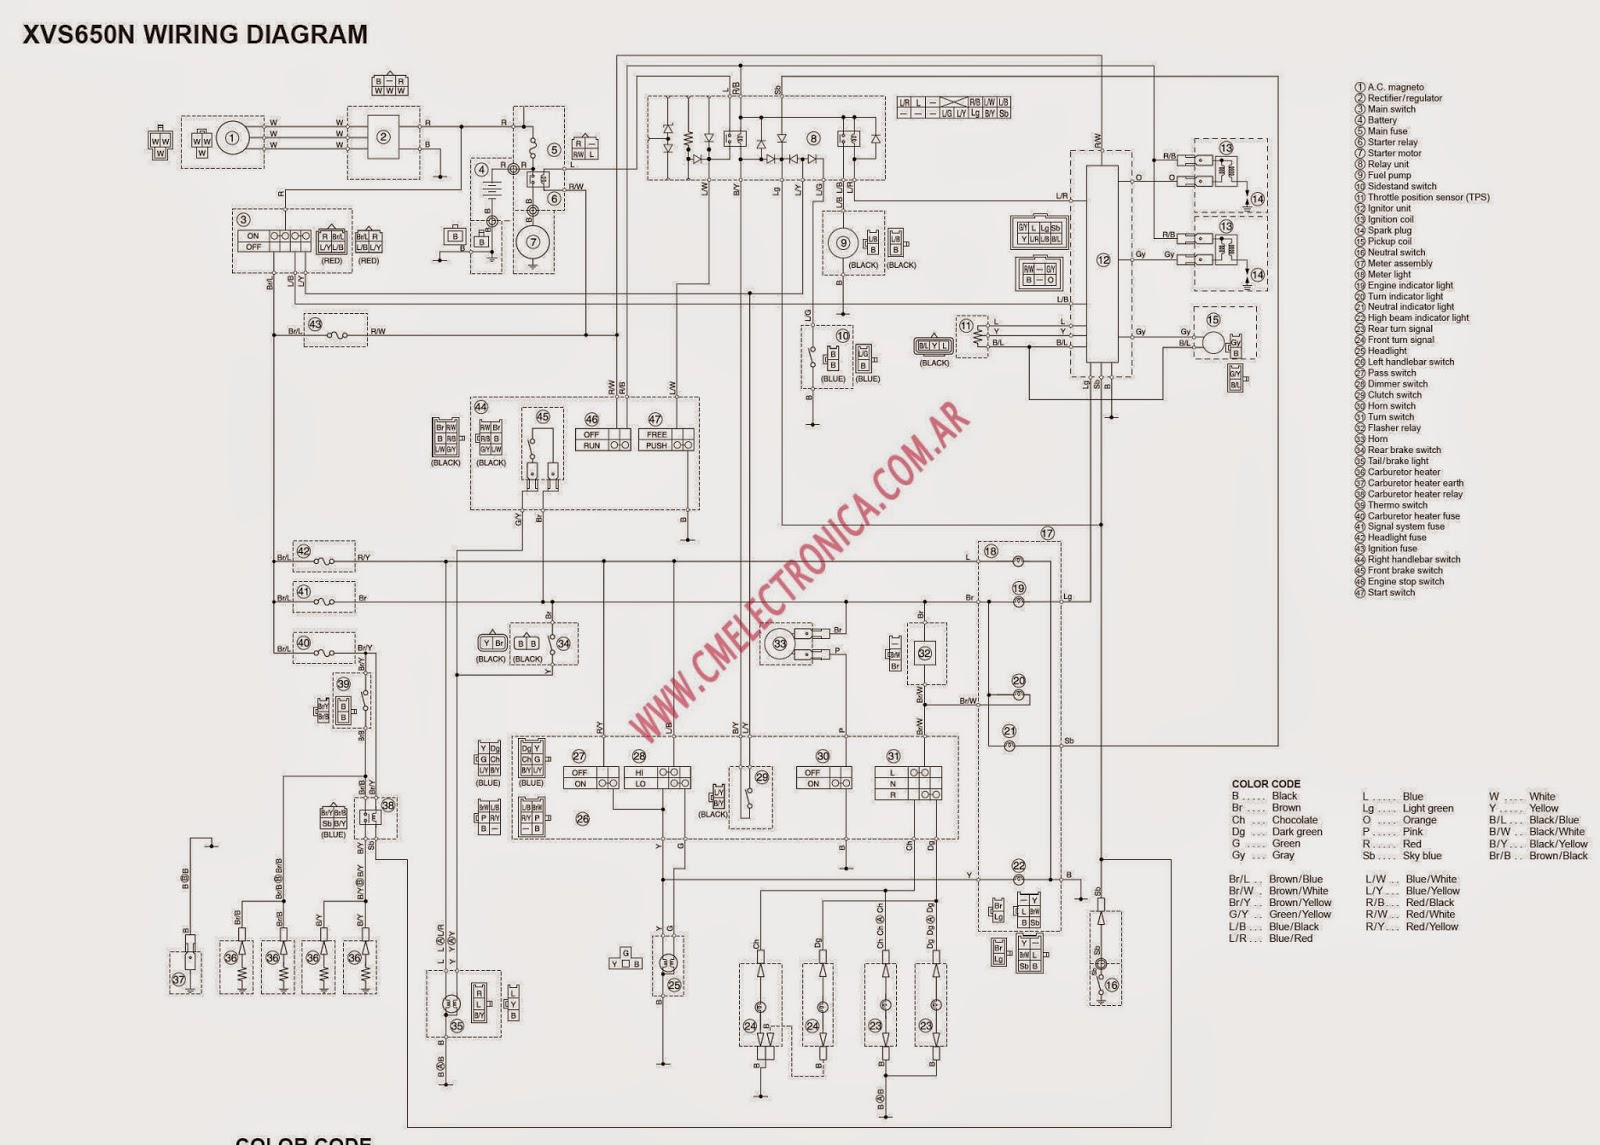 the chop shop xvs650 wiring diagram yamaha dt400 wiring diagram this is a wiring diagram for [ 1600 x 1145 Pixel ]